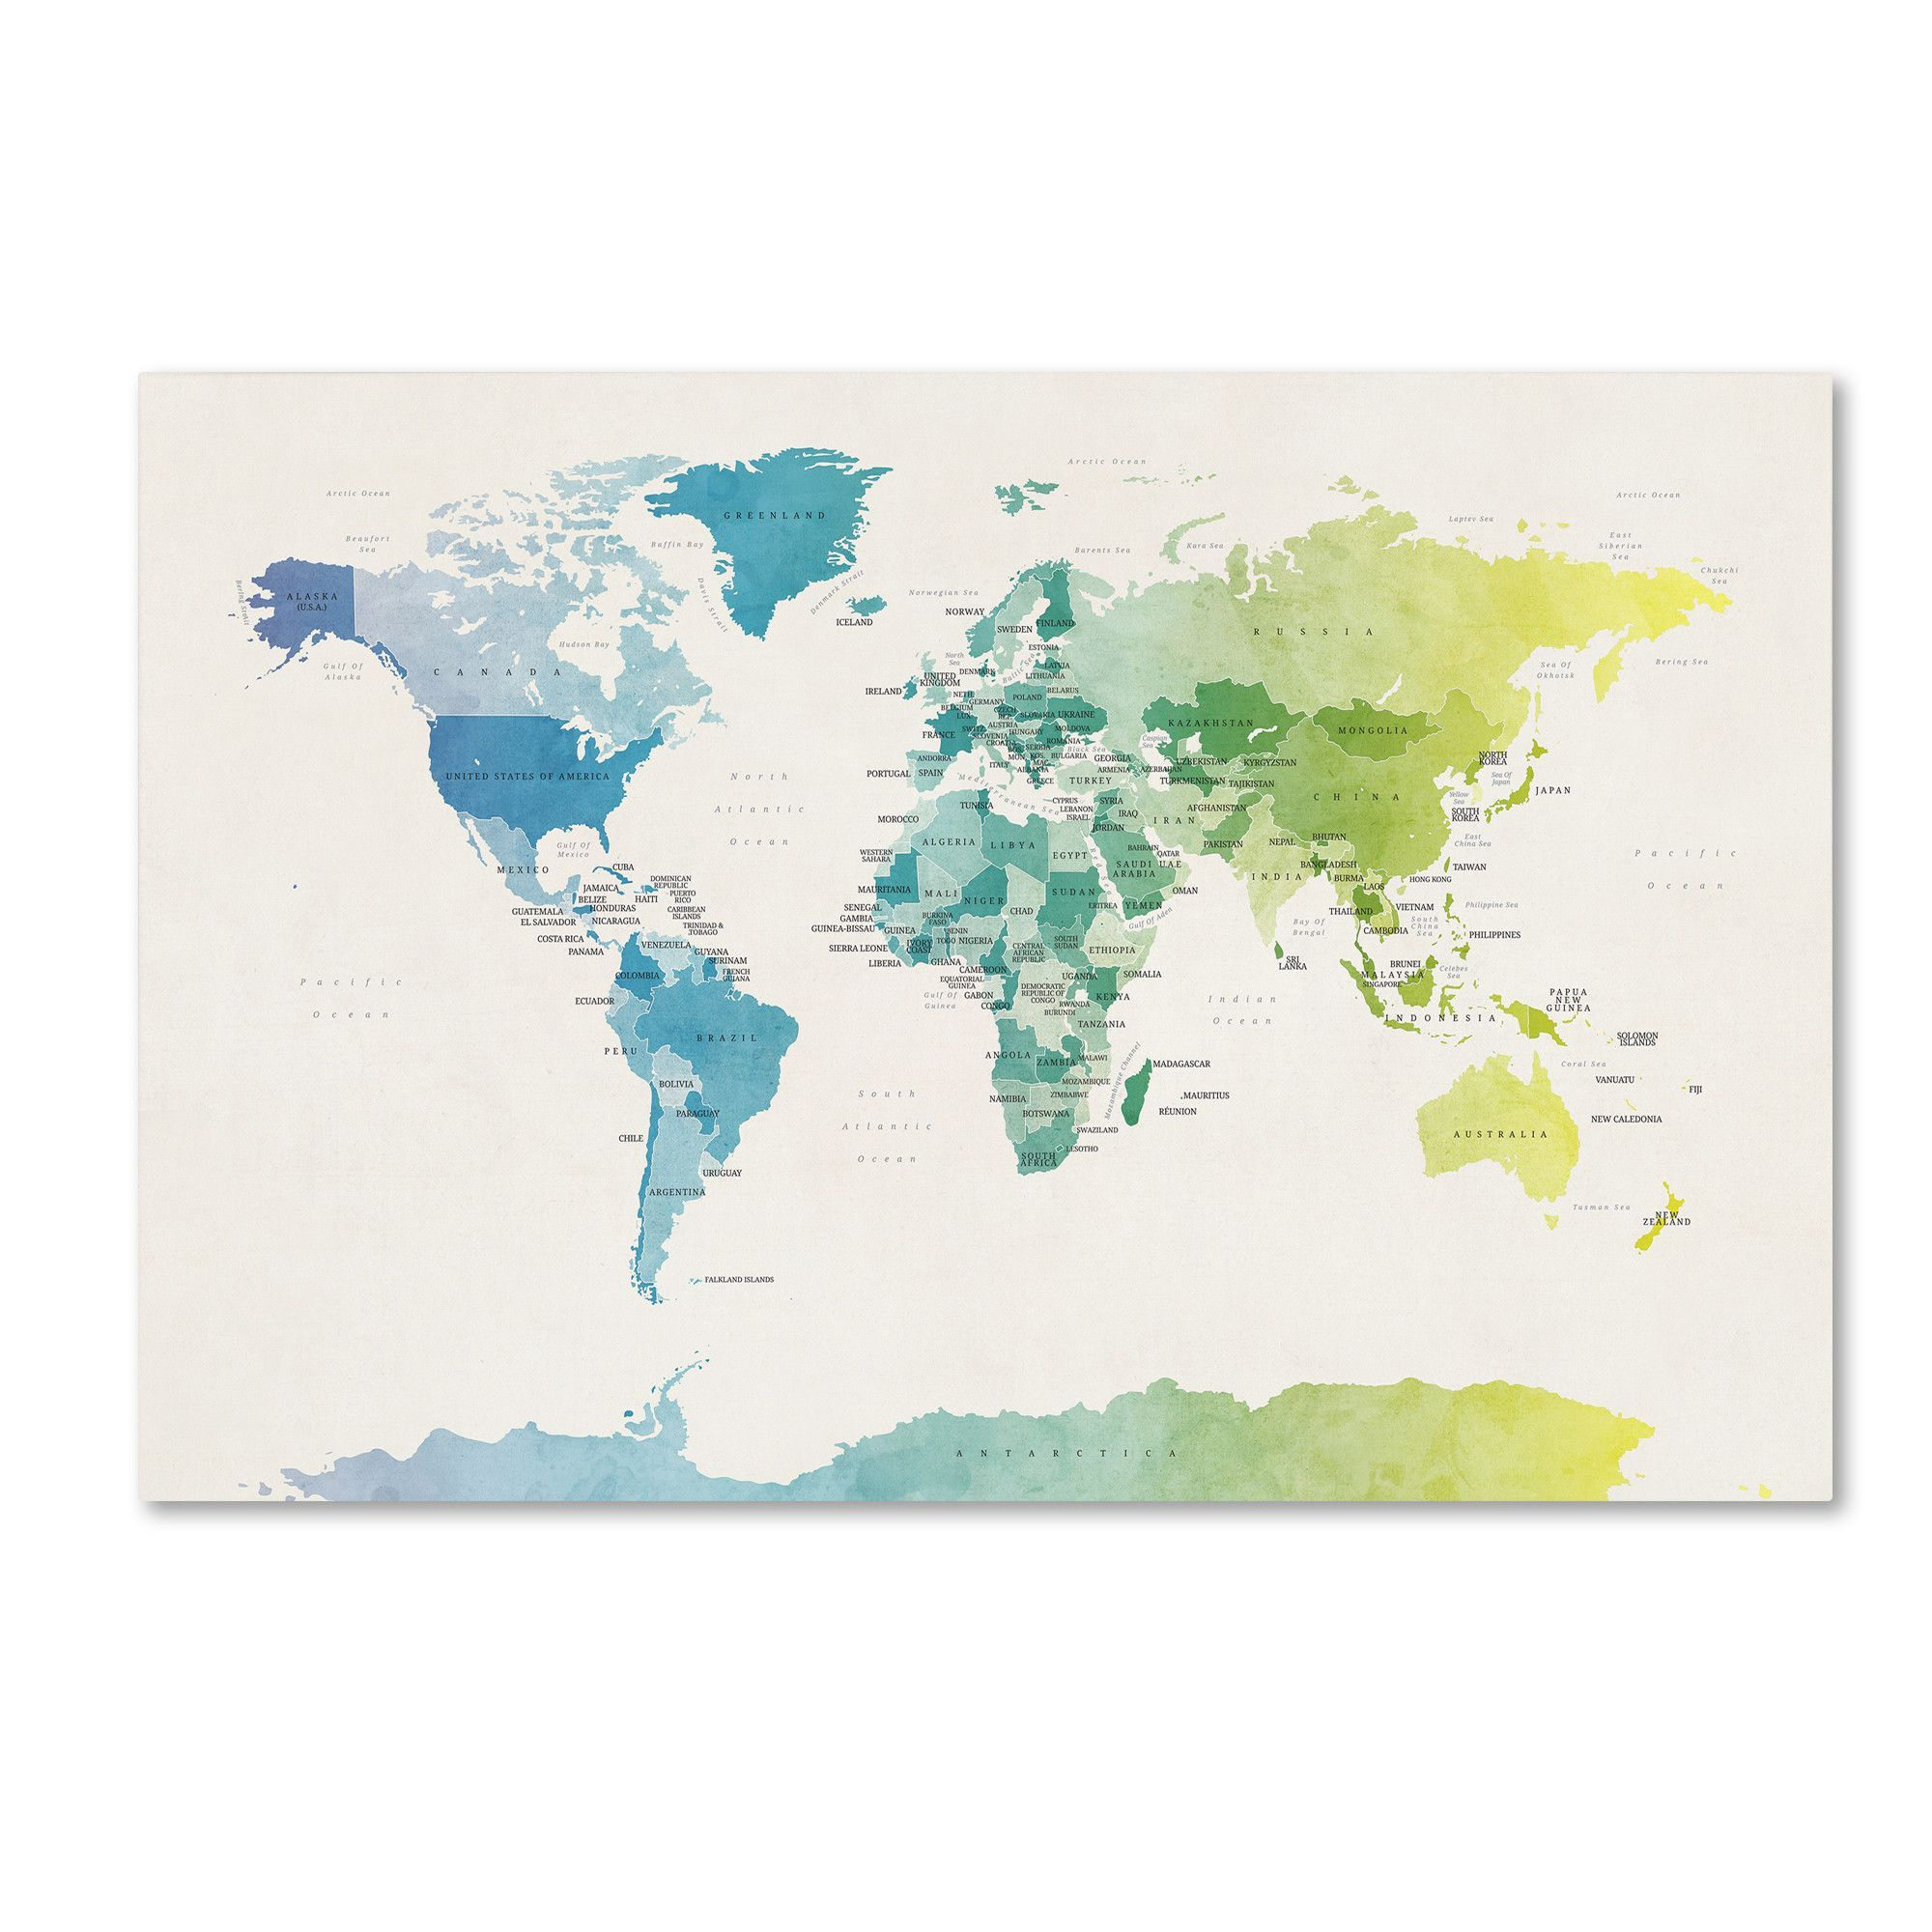 Watercolour political map of the world 2 by michael tompsett graphic watercolour political map of the world 2 by michael tompsett graphic art on wrapped canvas gumiabroncs Image collections